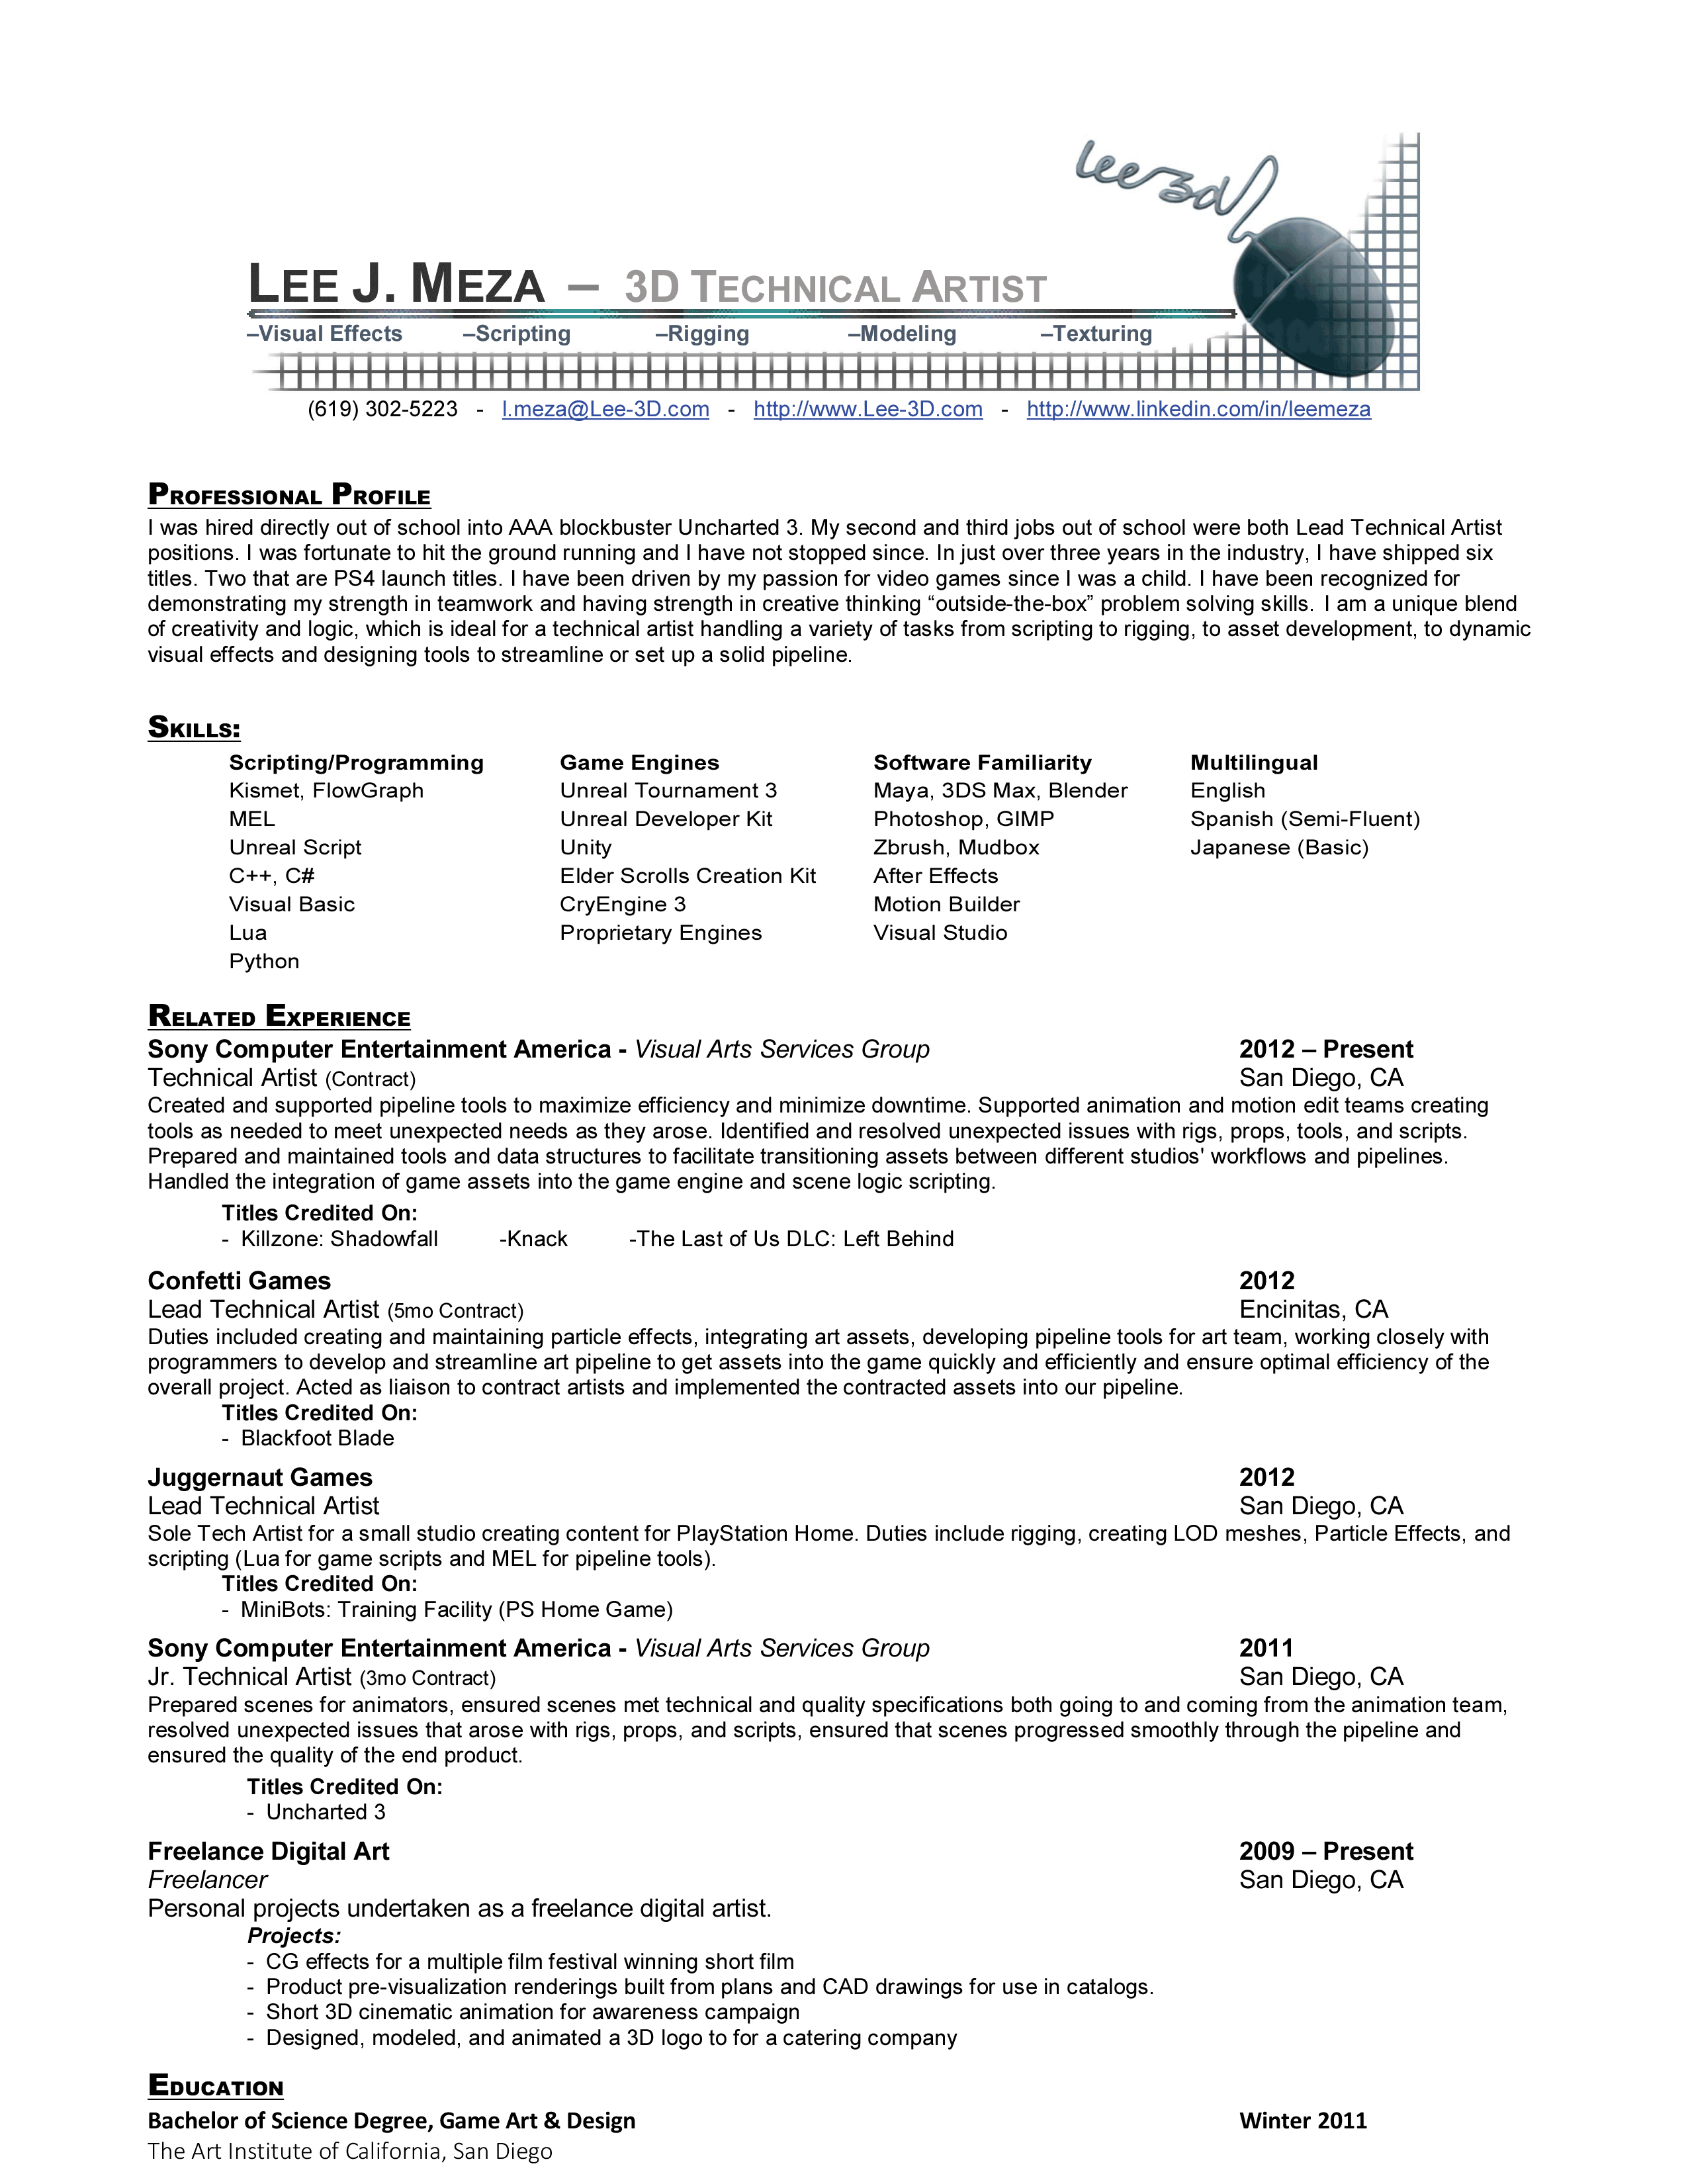 Lee J Meza 3d Technical Artist Resume